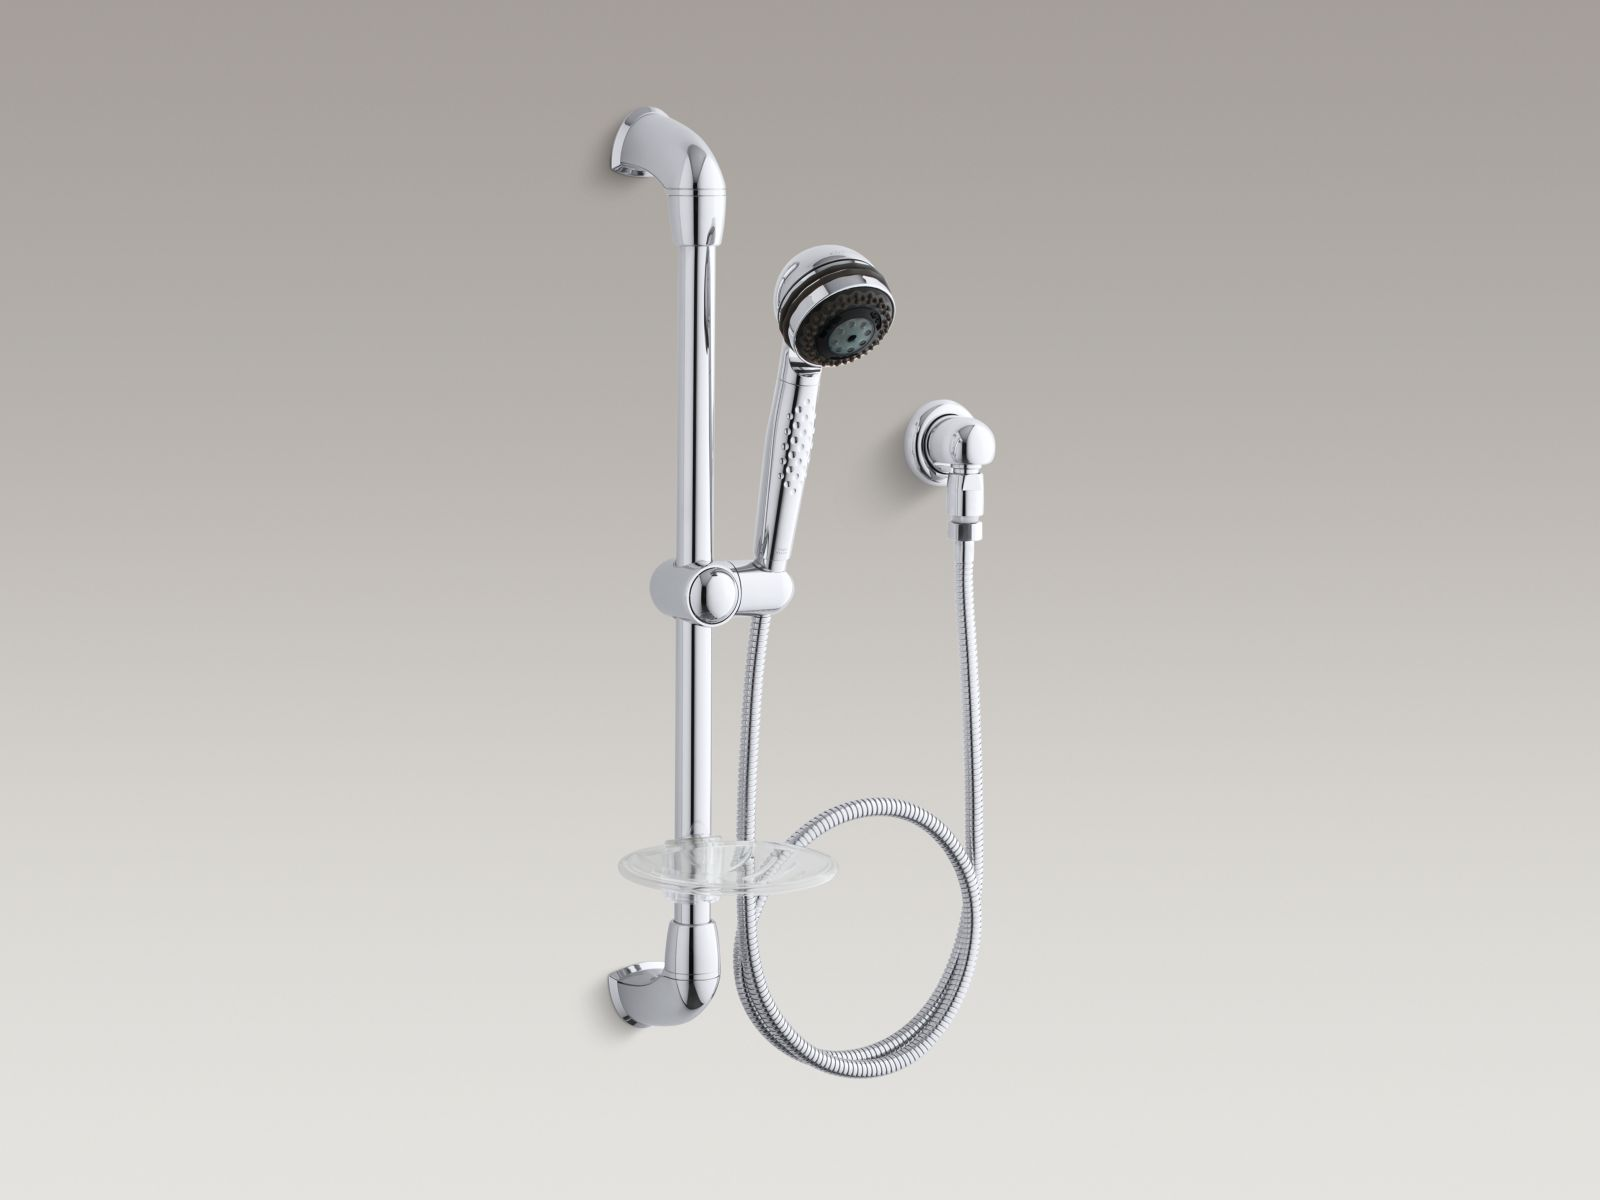 Kohler K-8520-CP MasterShower Hotel Handshower Kit Polished Chrome